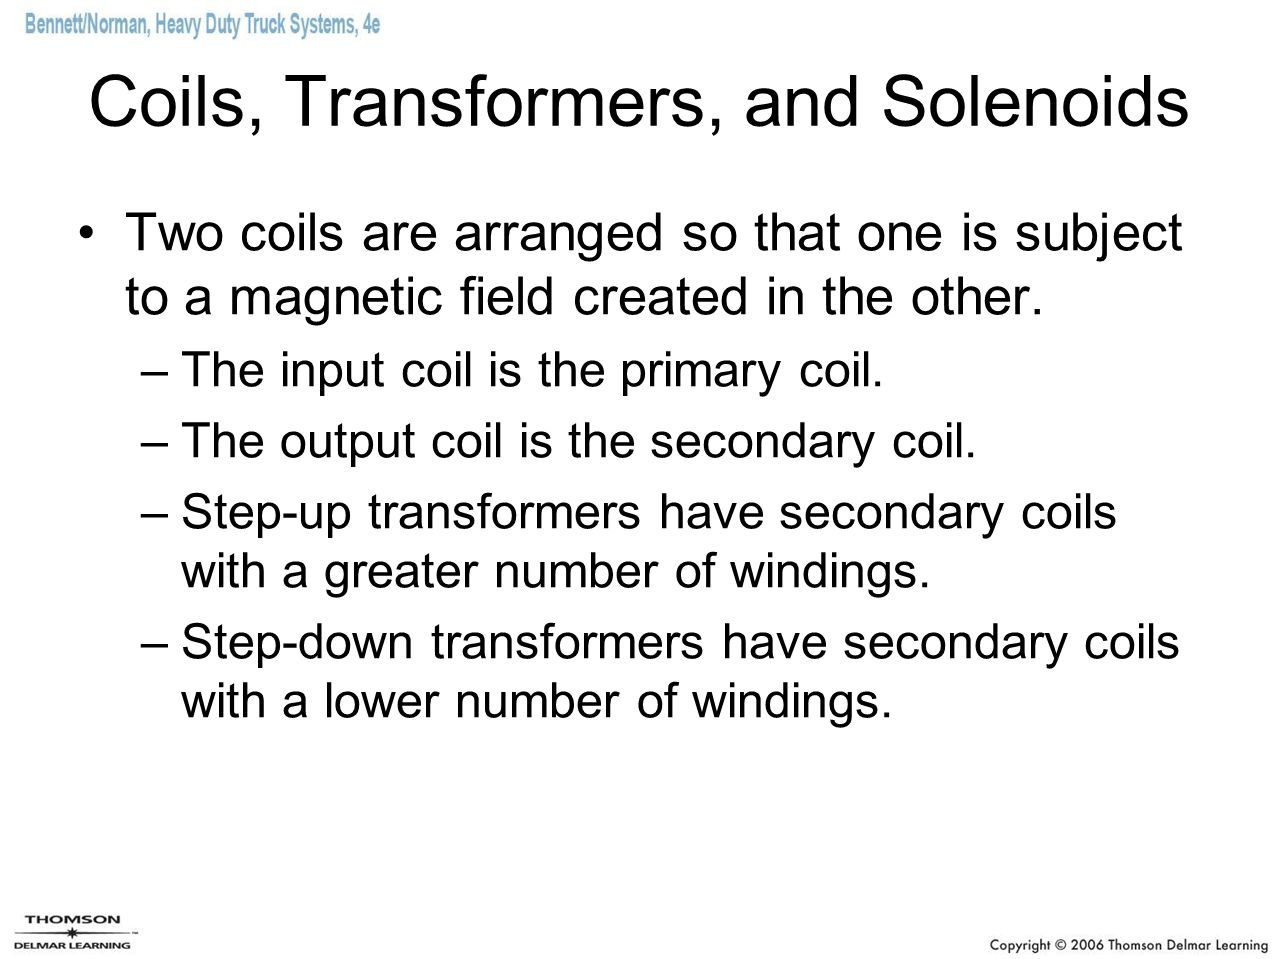 Coils, Transformers, and Solenoids